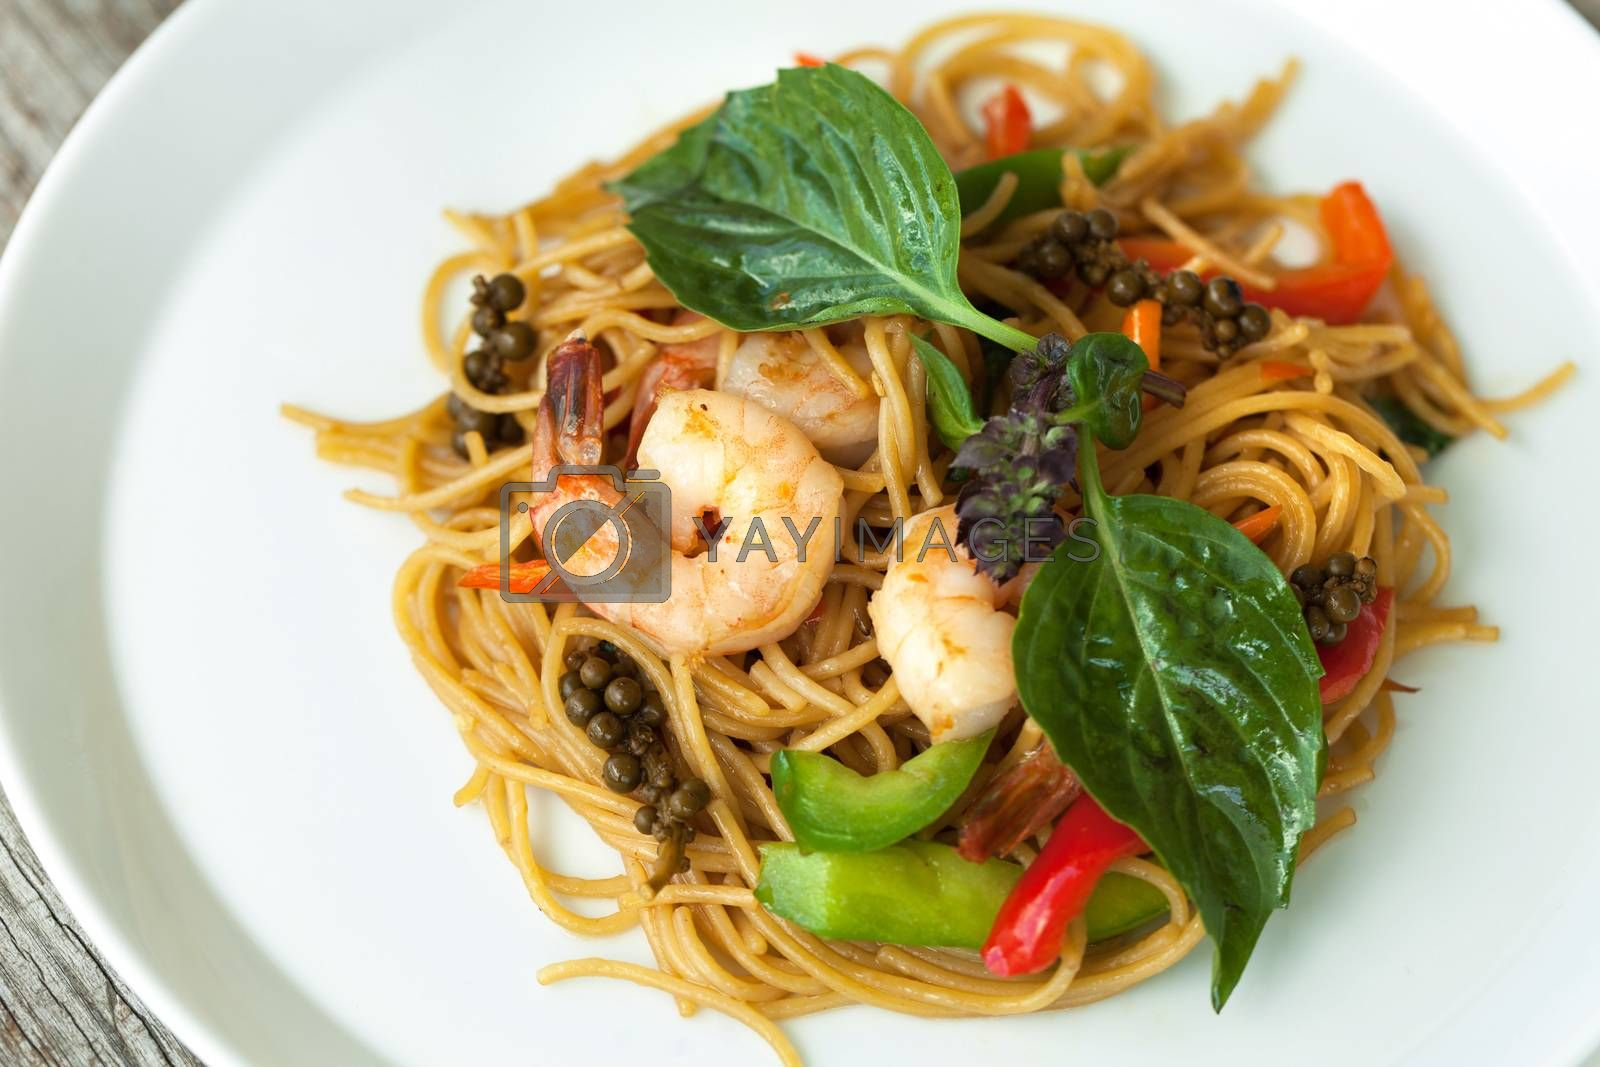 Thai Shrimp with Noodles Meal by graficallyminded